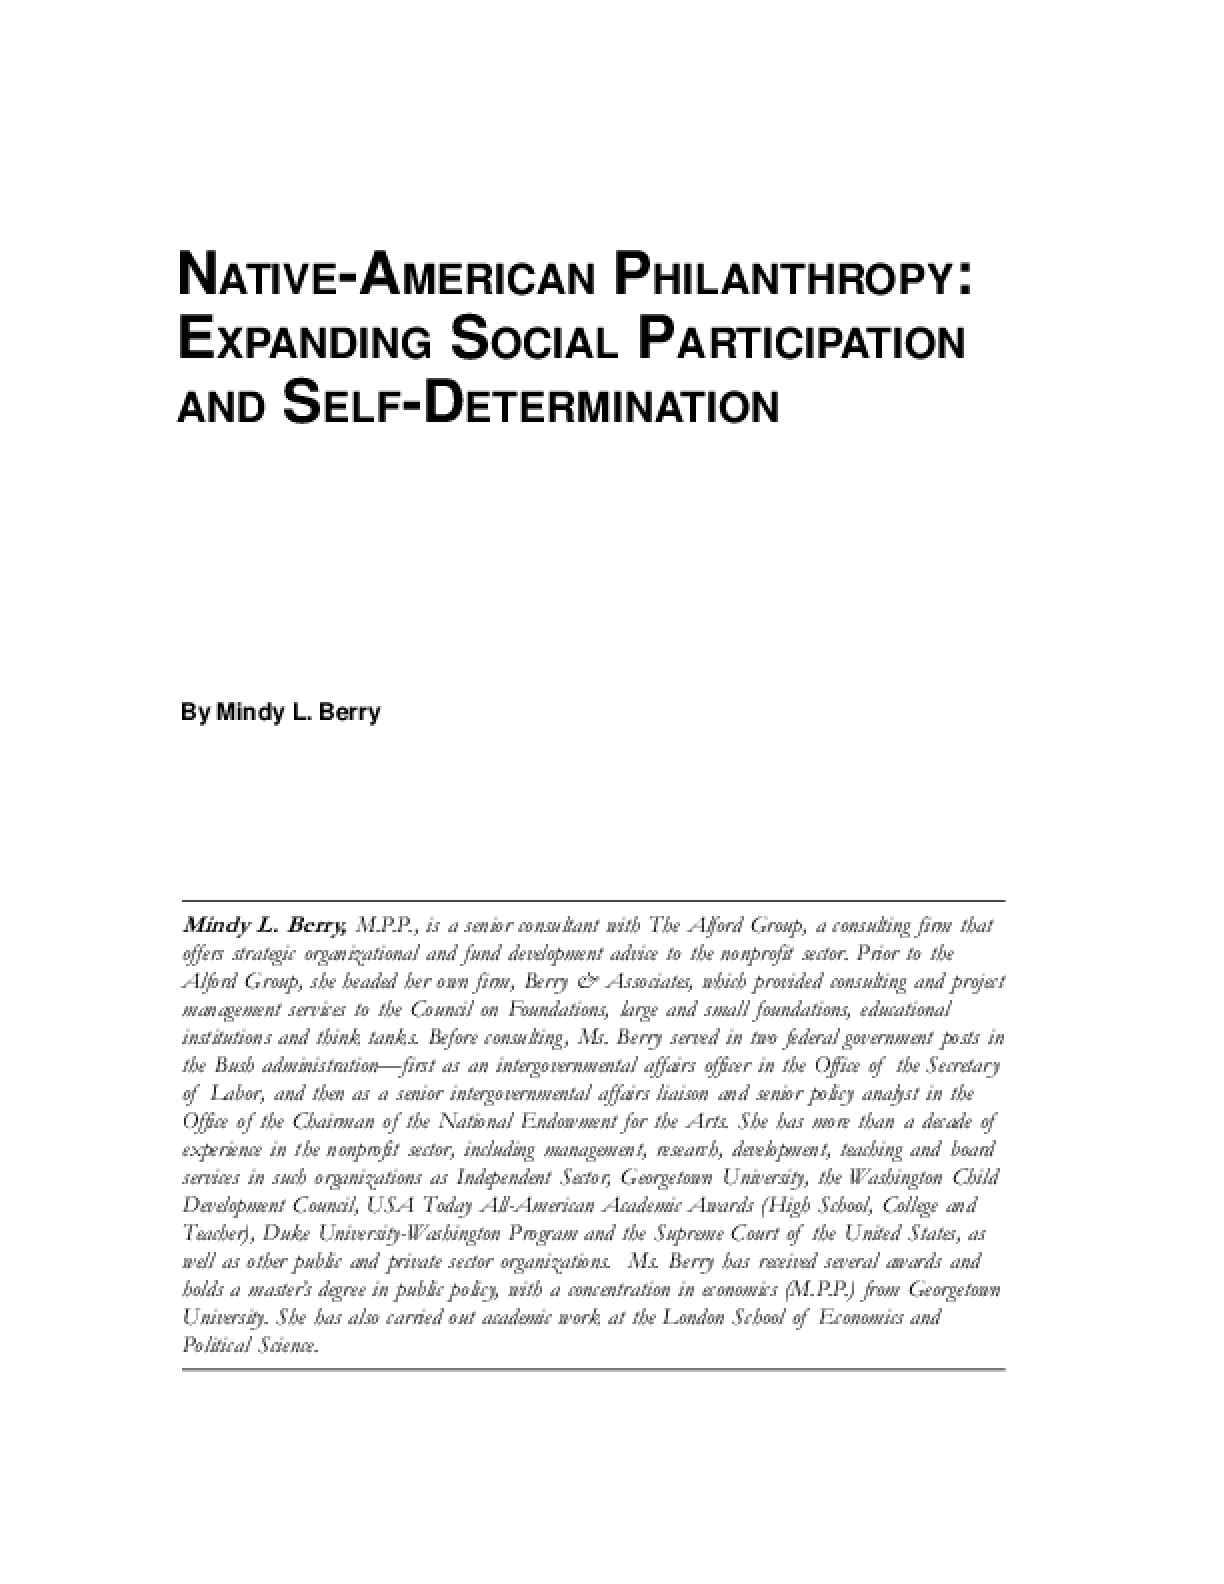 Native-American Philanthropy: Expanding Social Participation and Self-determination